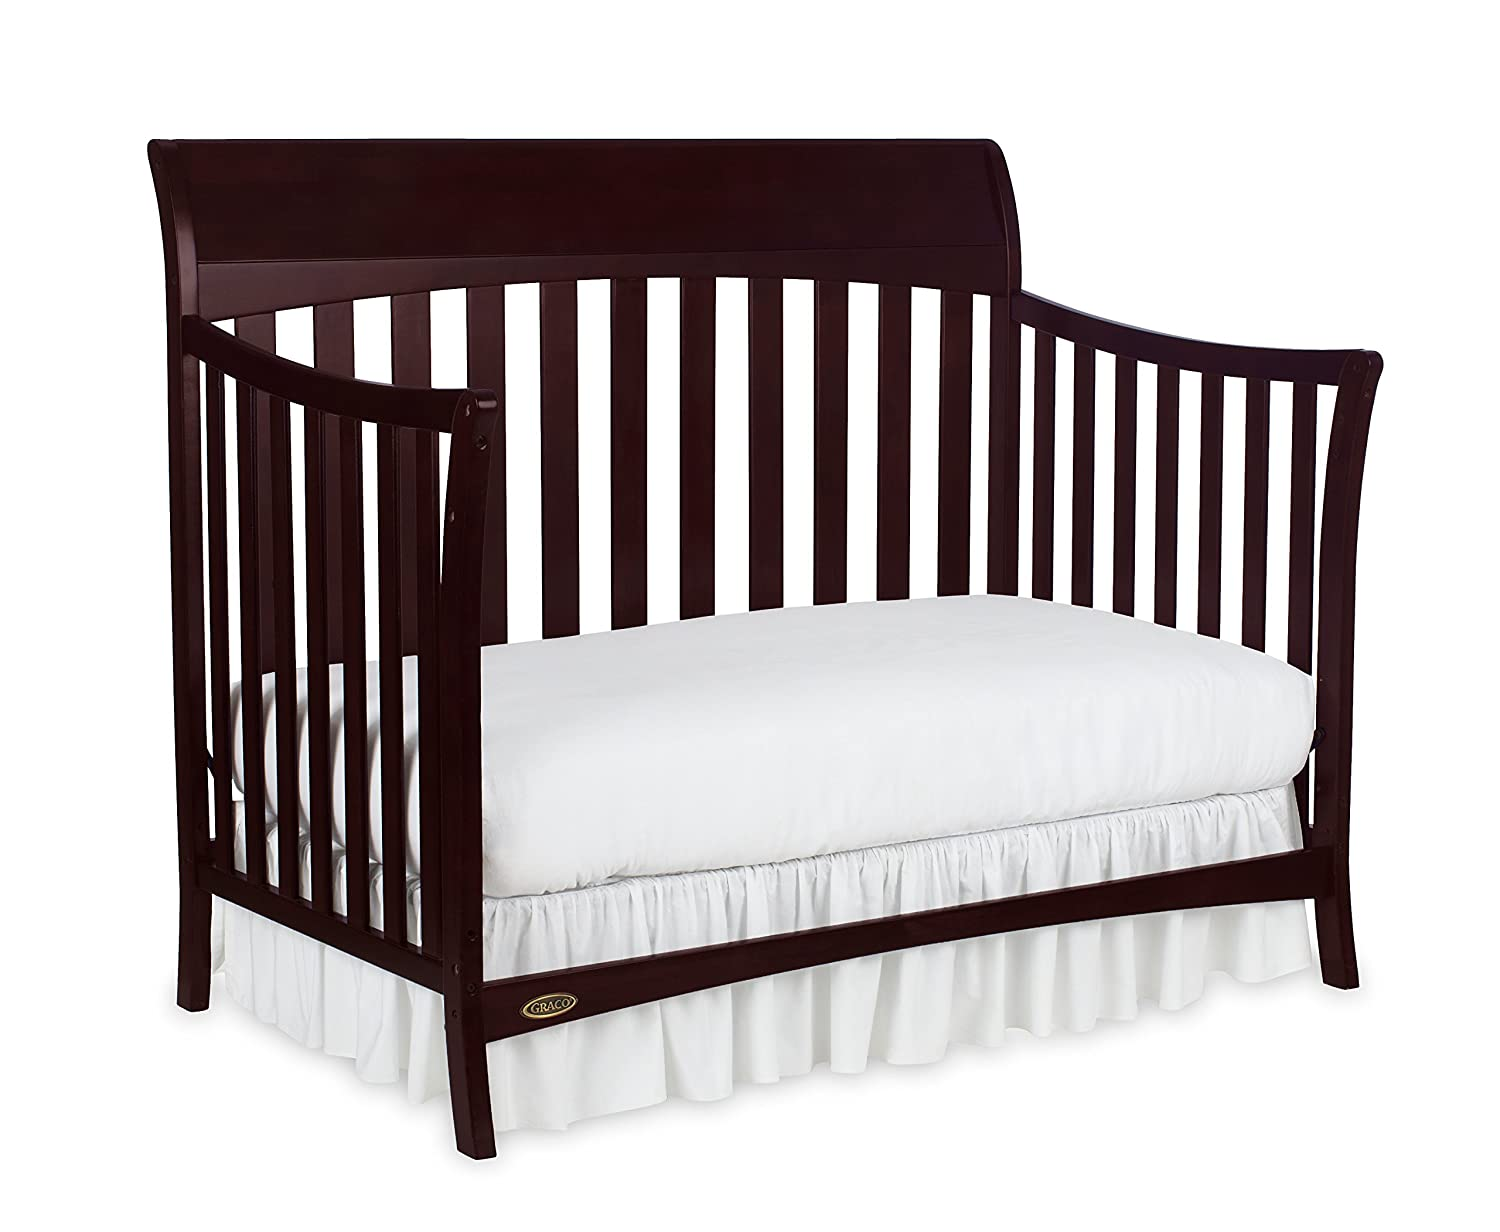 children haven delta and emery ximeraofficial convertible grey cribs white crib providence in org textured amazon